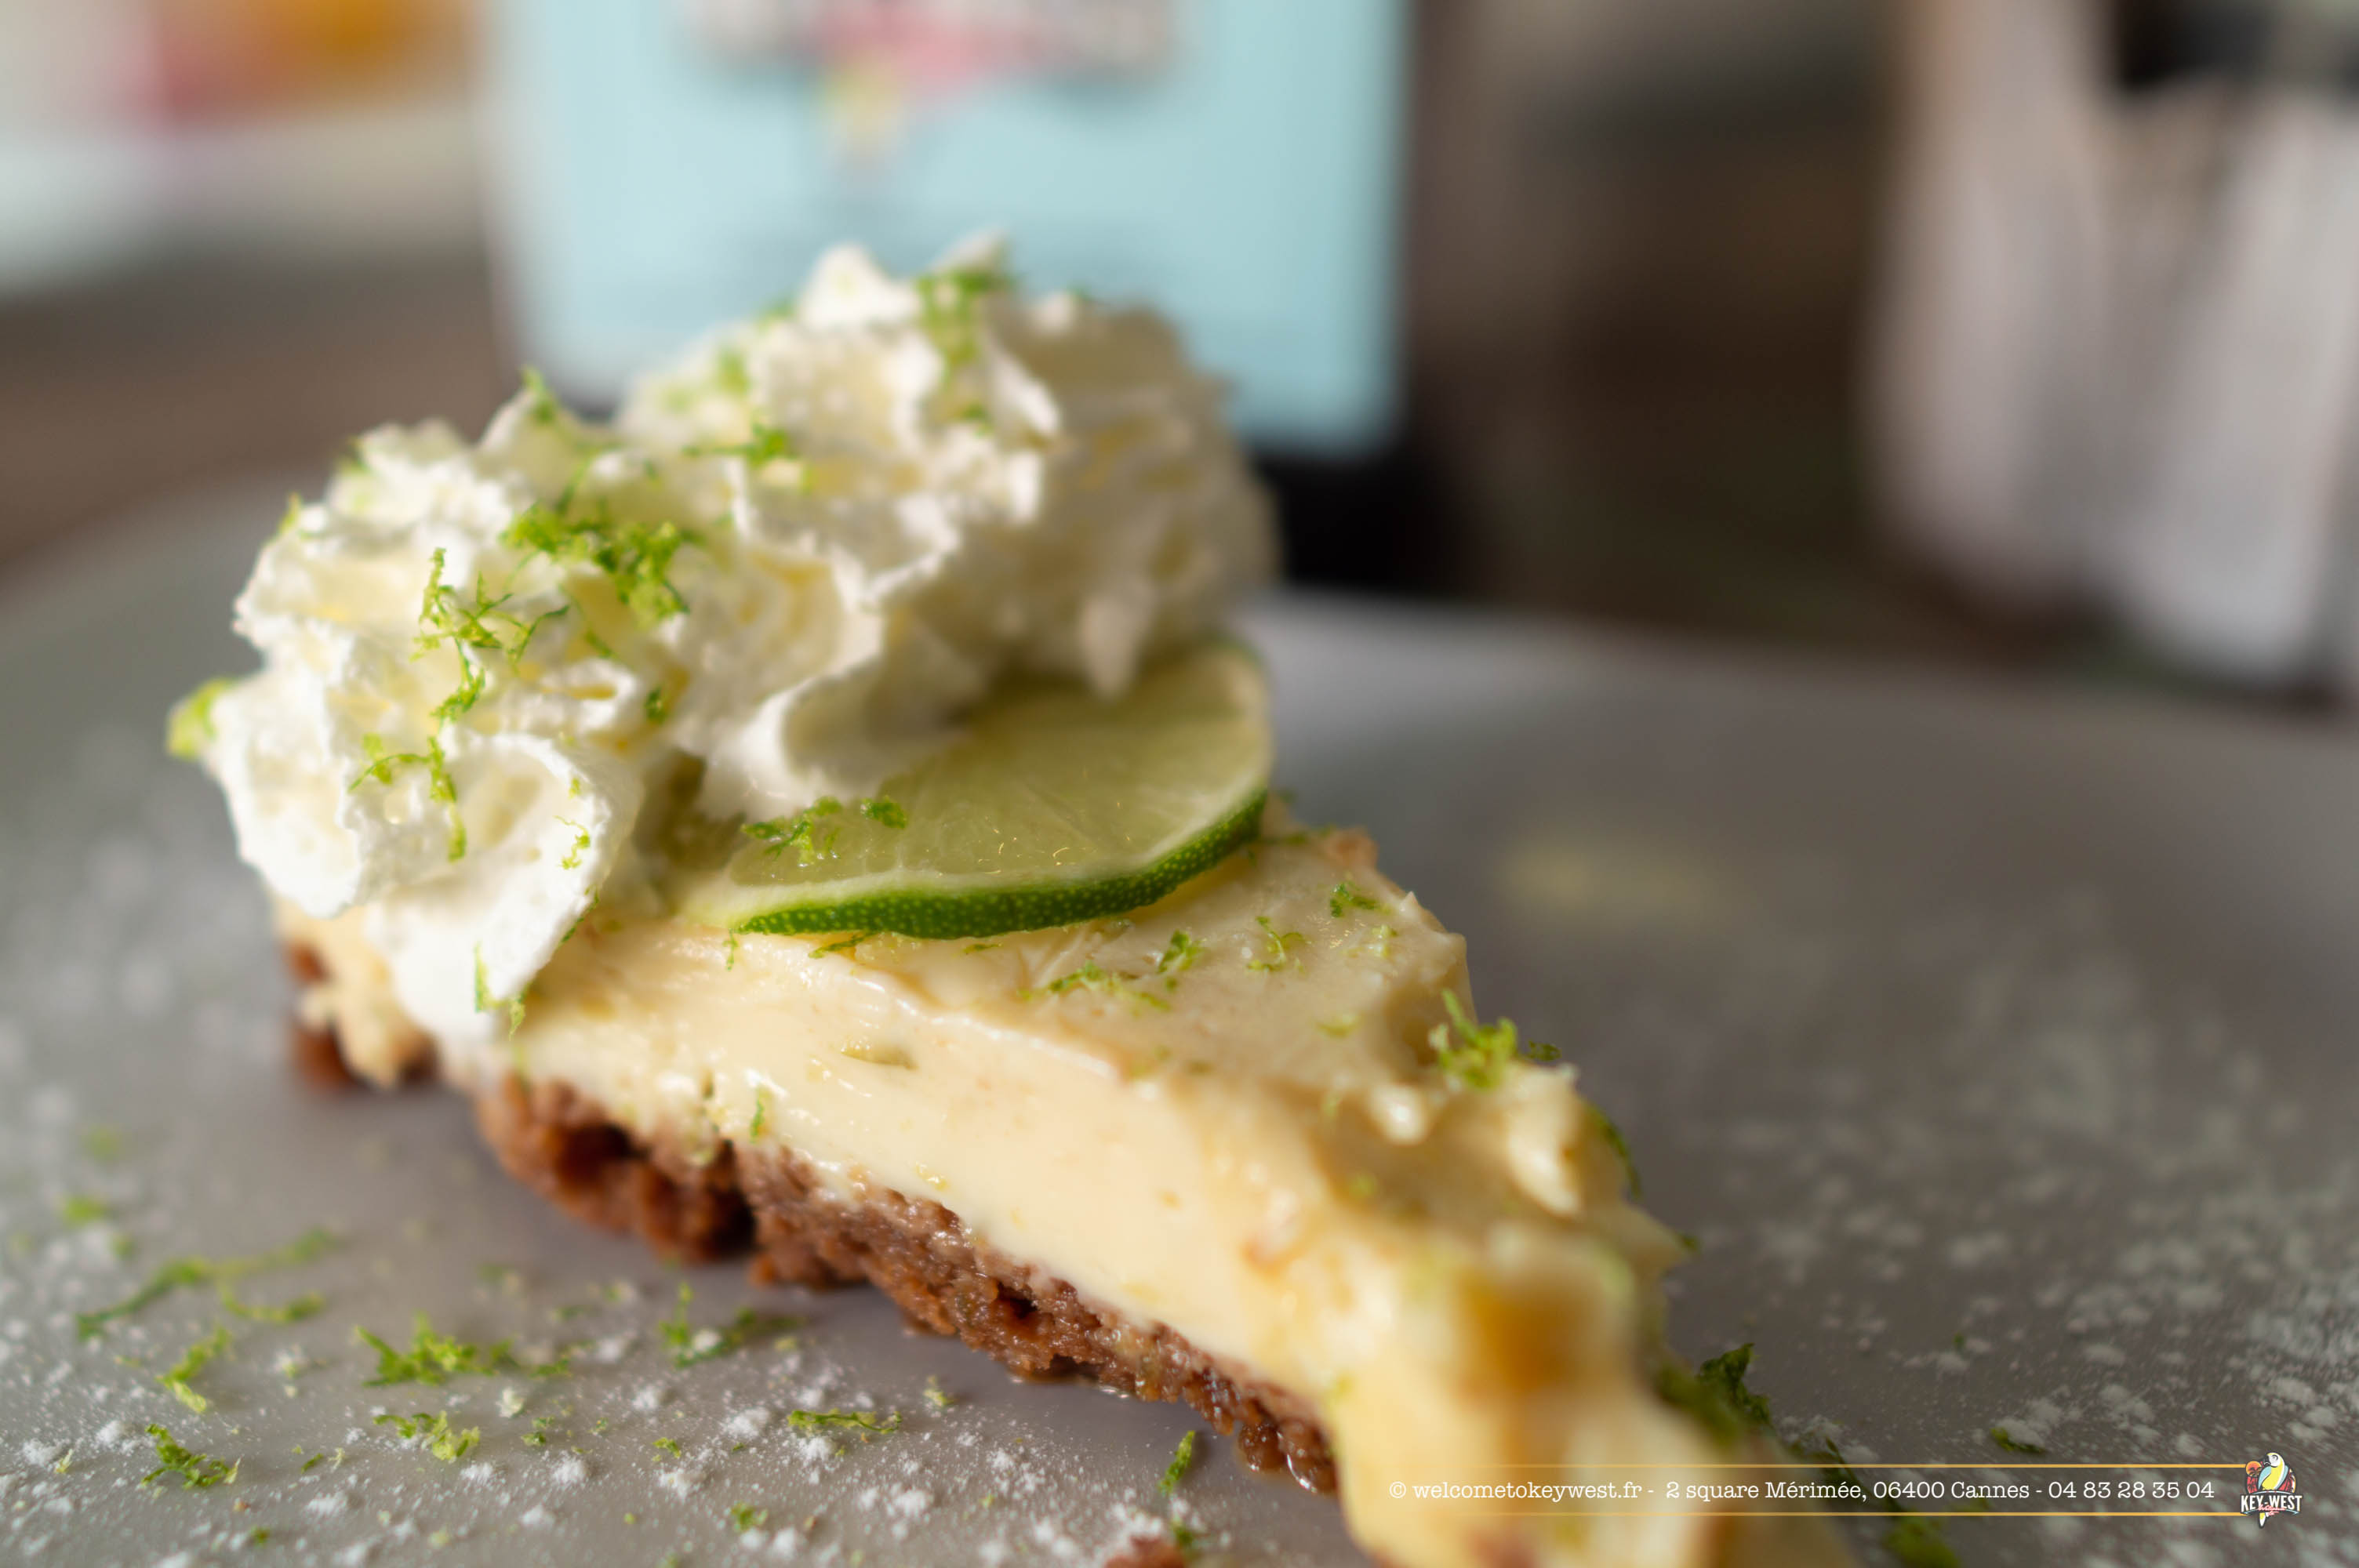 Welcome to Key West - Authentique Key Lime Pie